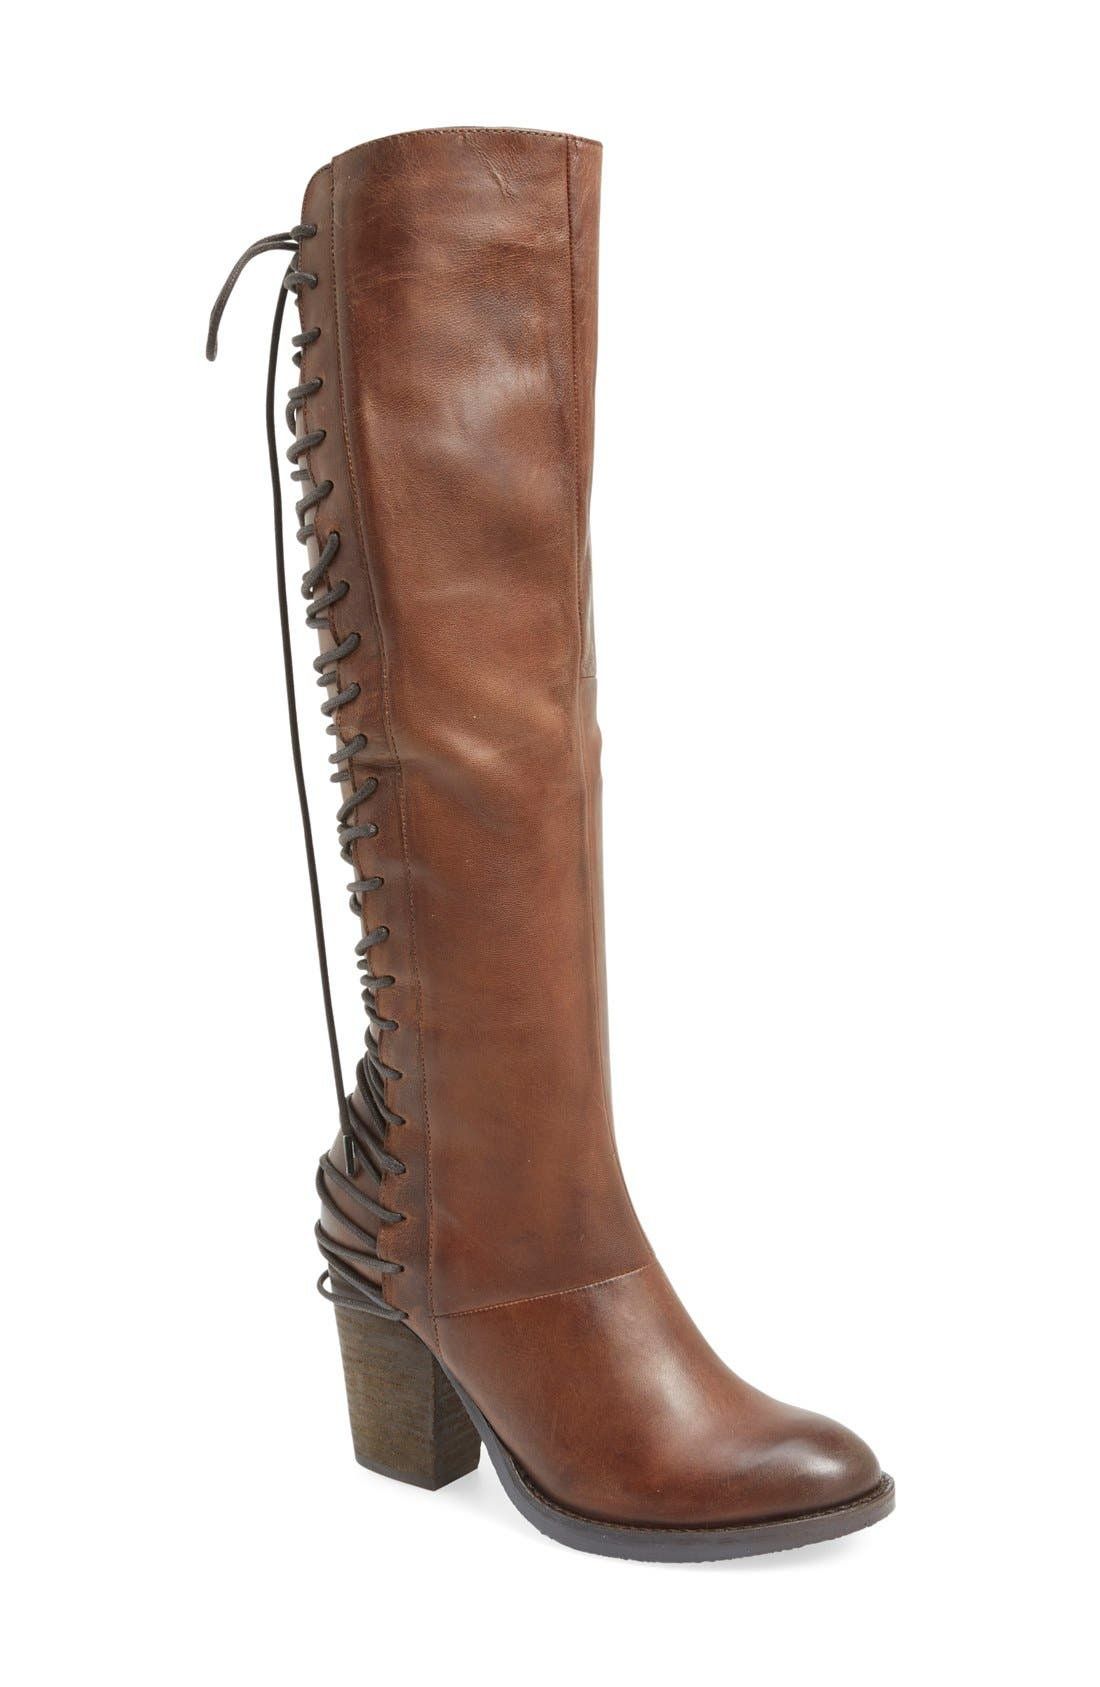 Main Image - Steve Madden 'Rikter' Knee High Boot (Women)